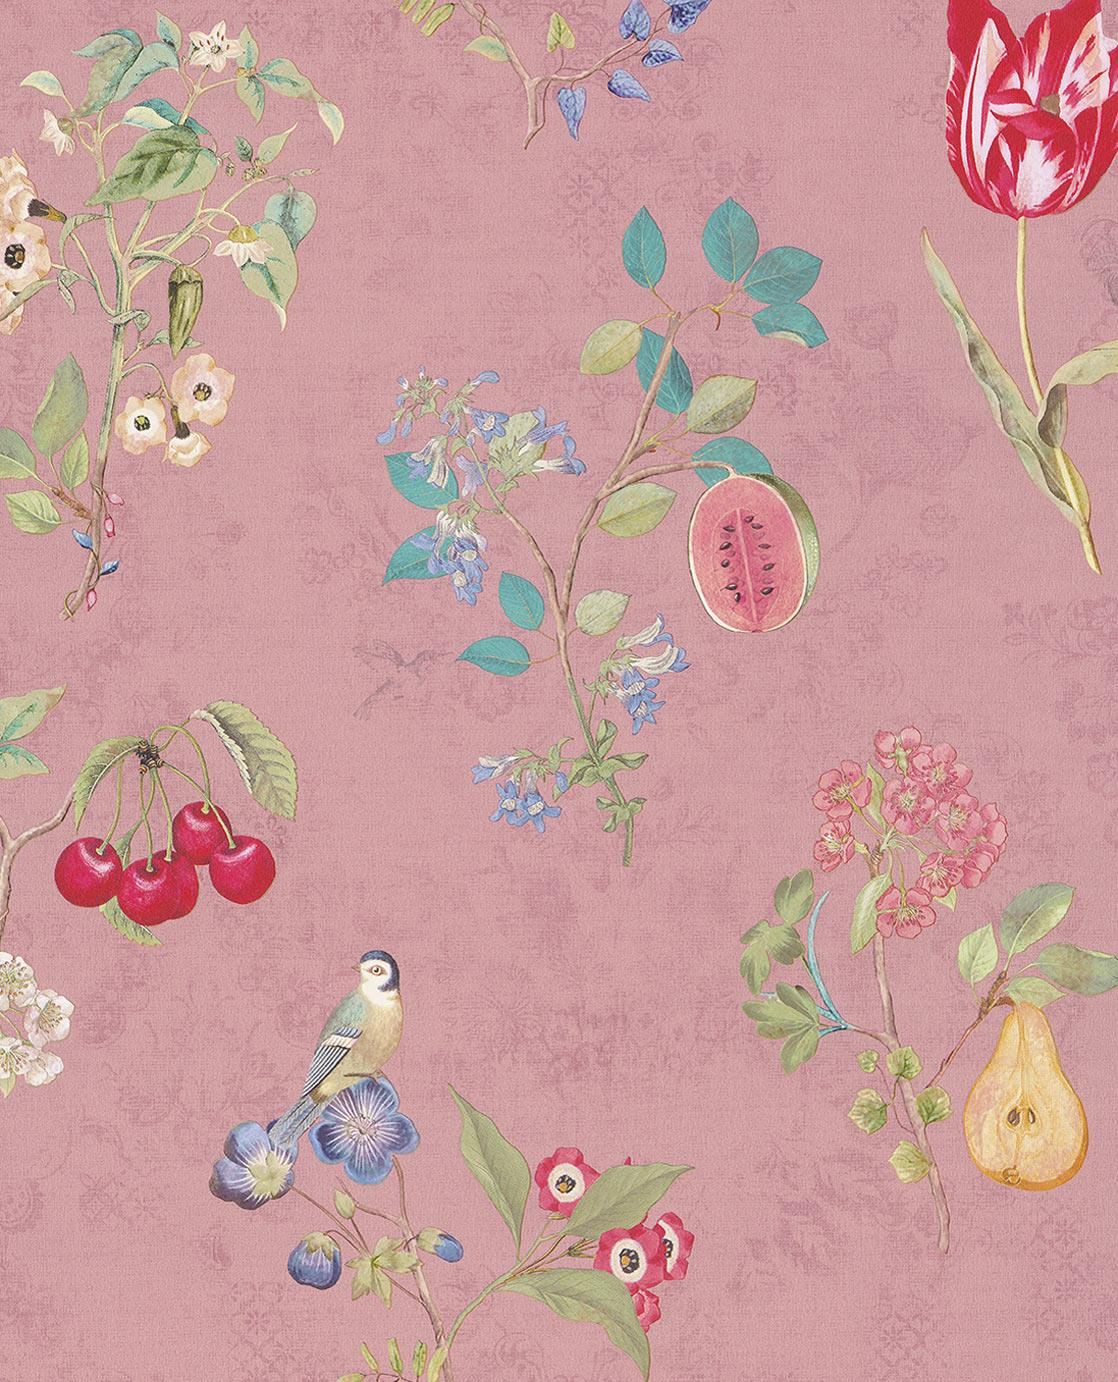 Pip Studio No 2, 10 x 0.52 wallpaper, Multi Colour, Pink